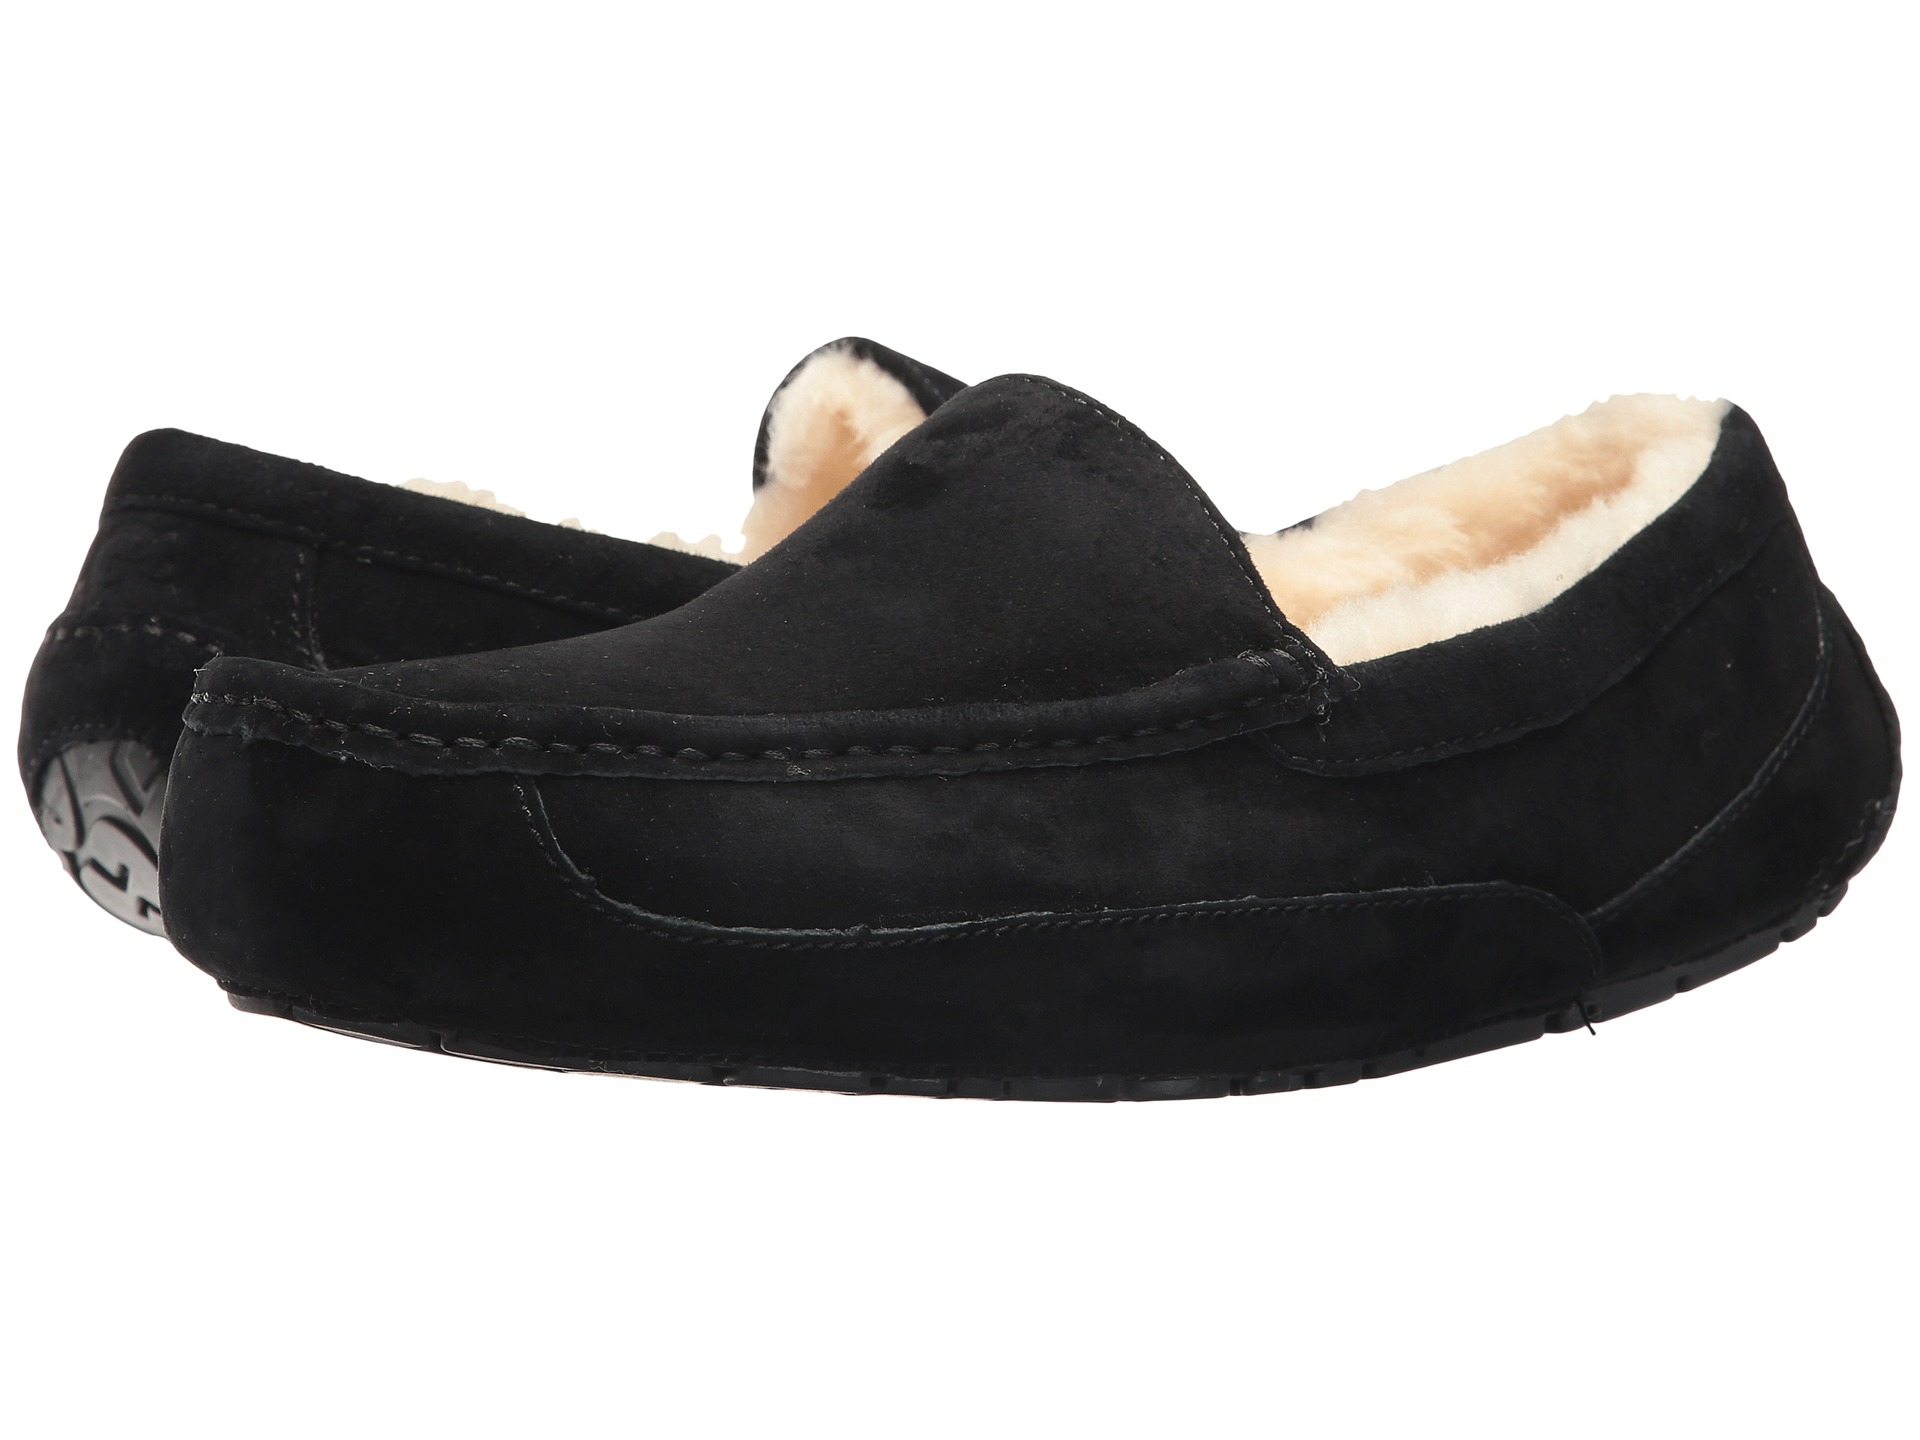 eb0d09ee839 Ugg Ascot Slipper Zappos - cheap watches mgc-gas.com